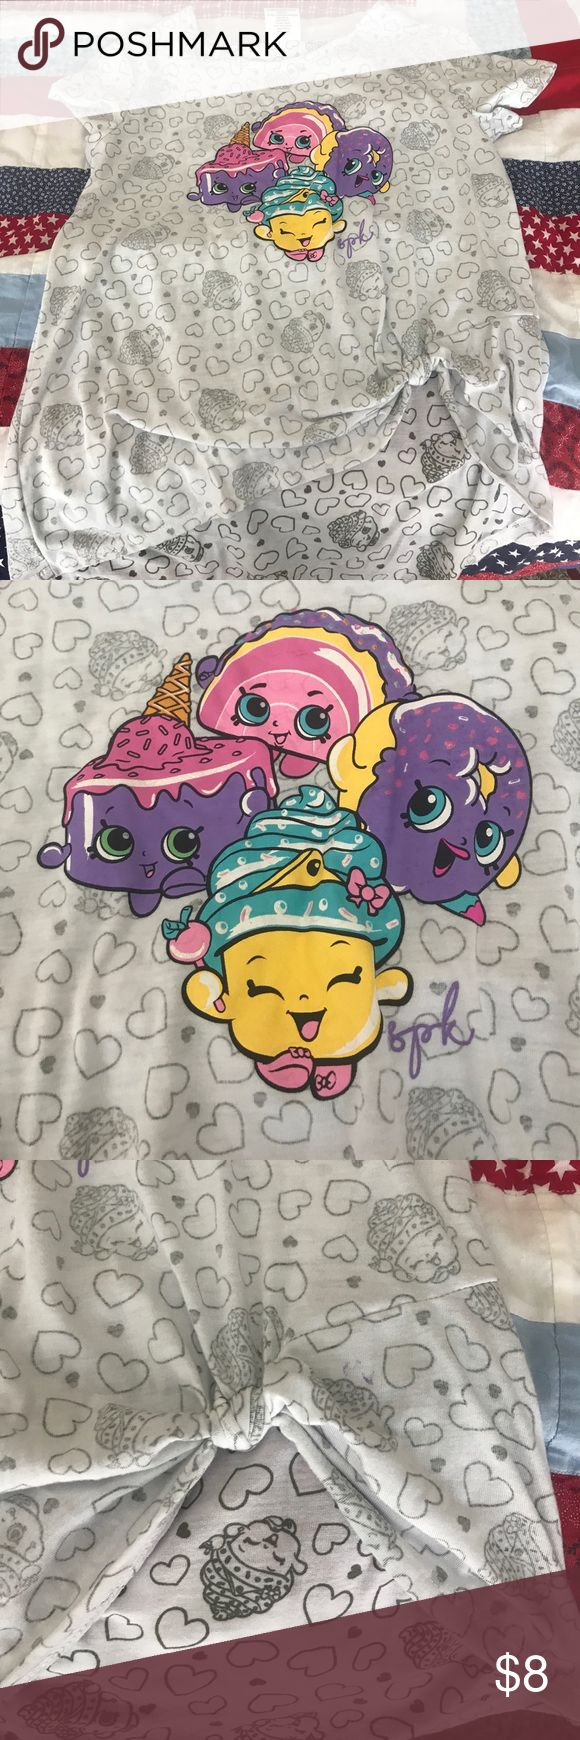 Shopkins T Cute Tshirt for the shopkins lover in your life. Has a side tie built in. Smoke free home. Bundle to save even more. shopkins Shirts & Tops Tees - Short Sleeve